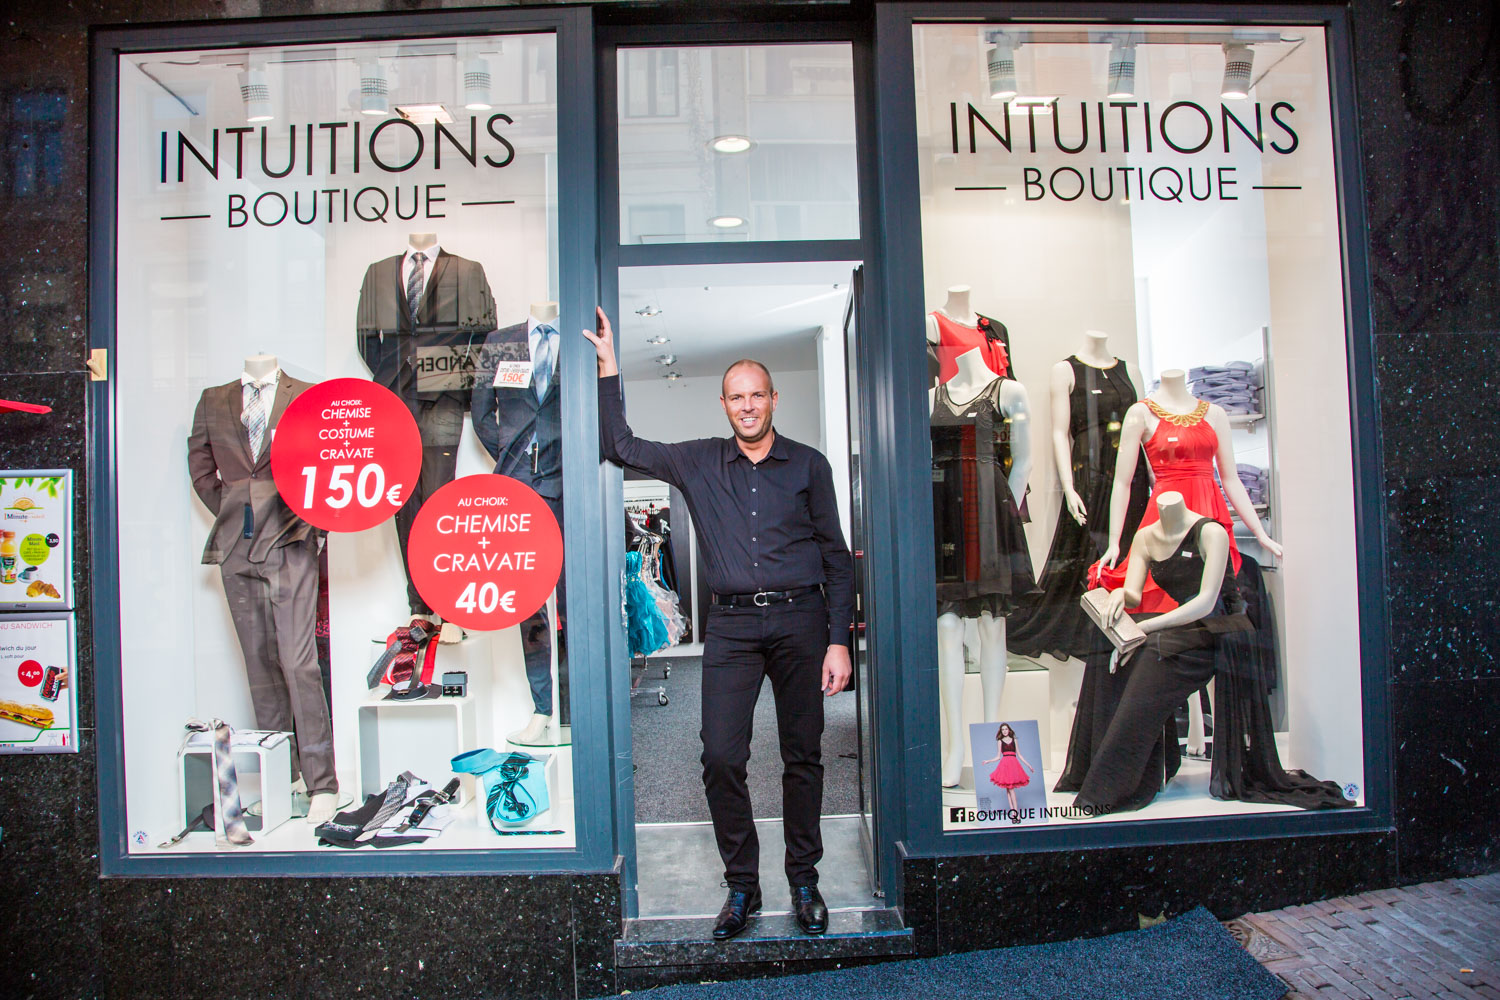 Boutique intuitions vêtements Client microStart